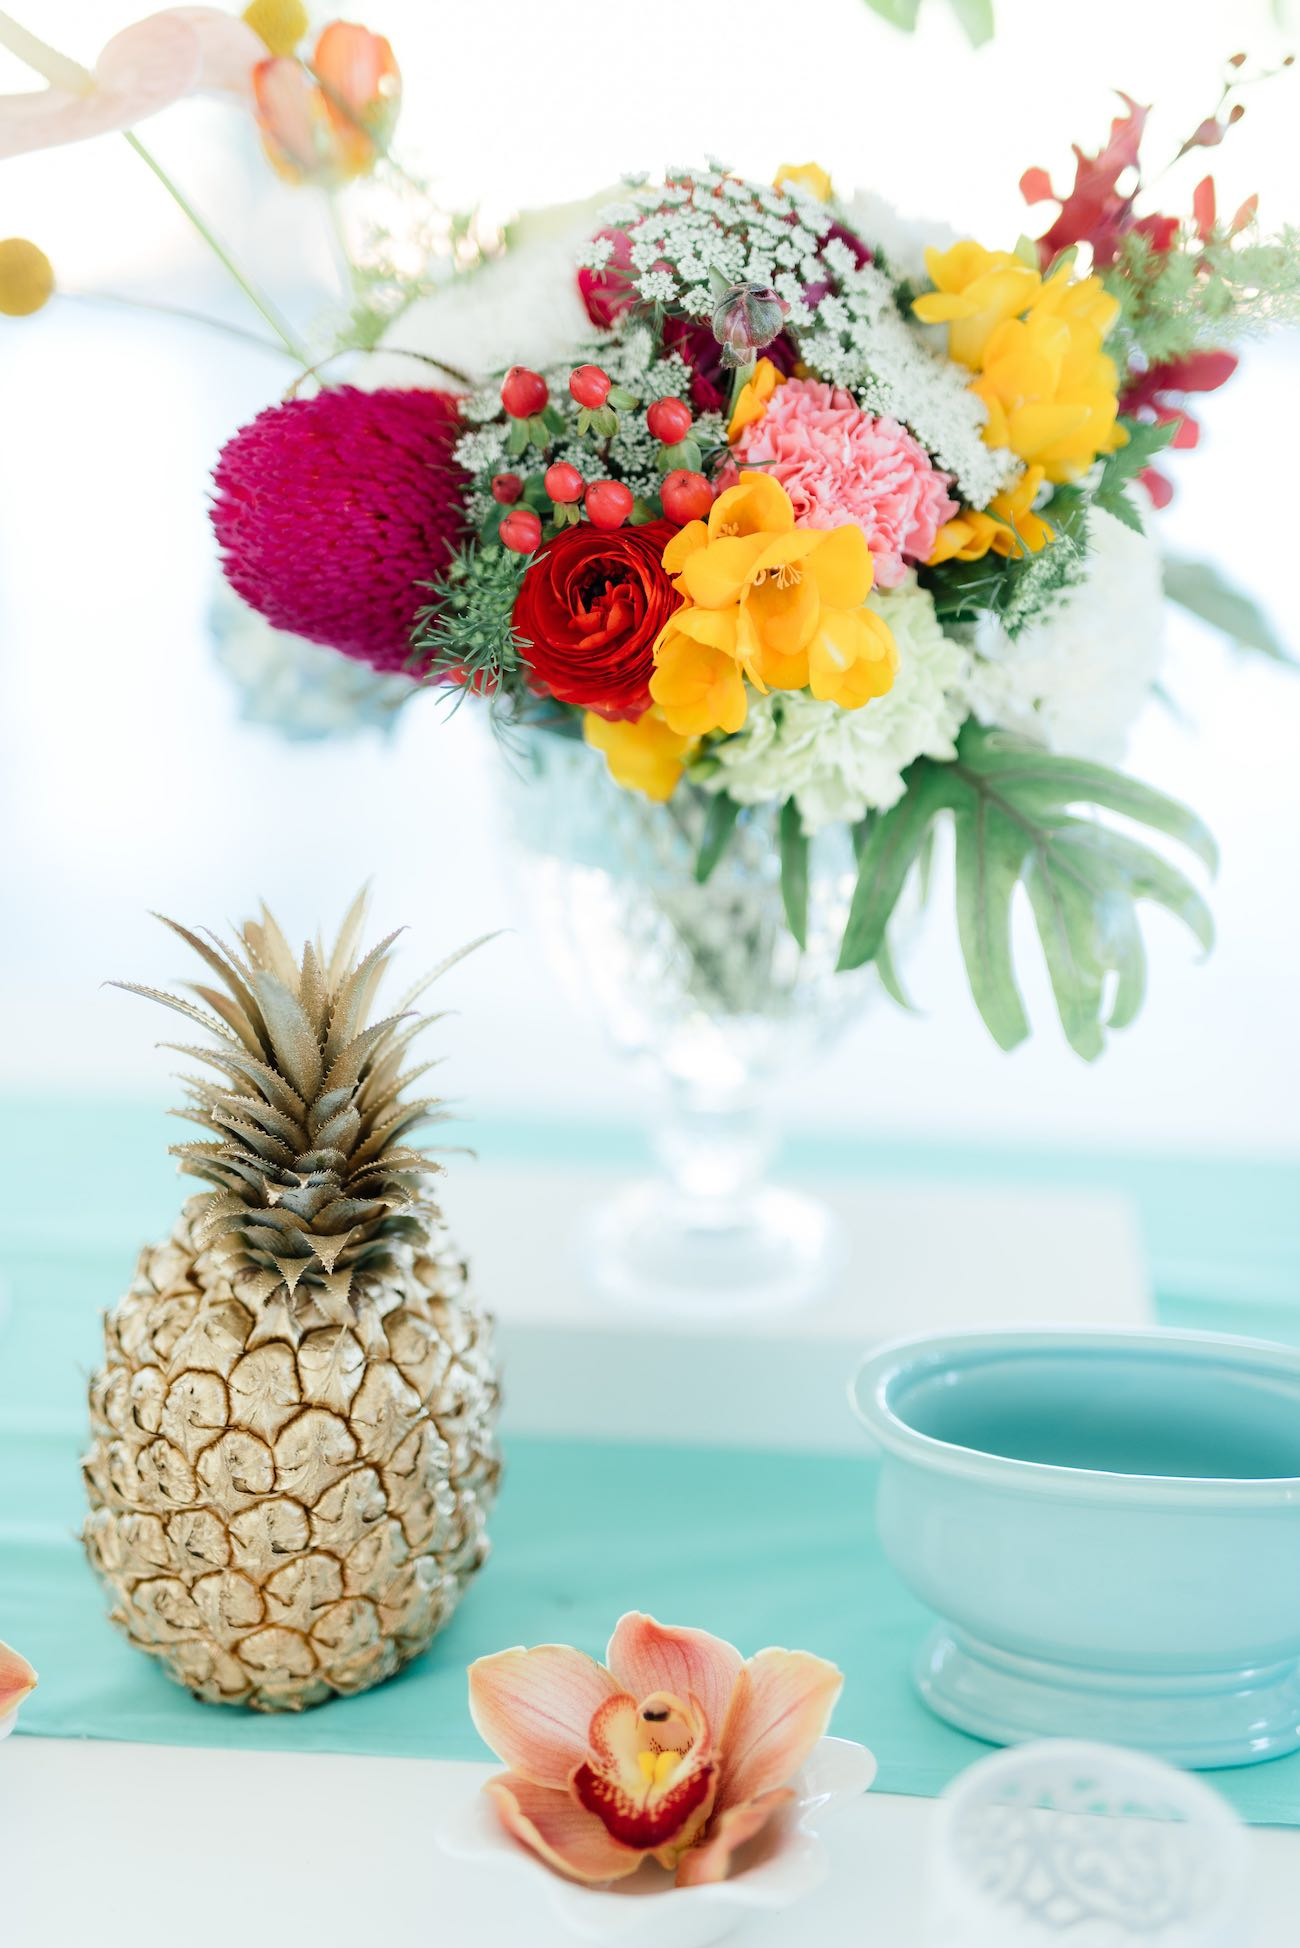 Spray Paint Pineapple Is Easy And Cheap Decor That Anyone